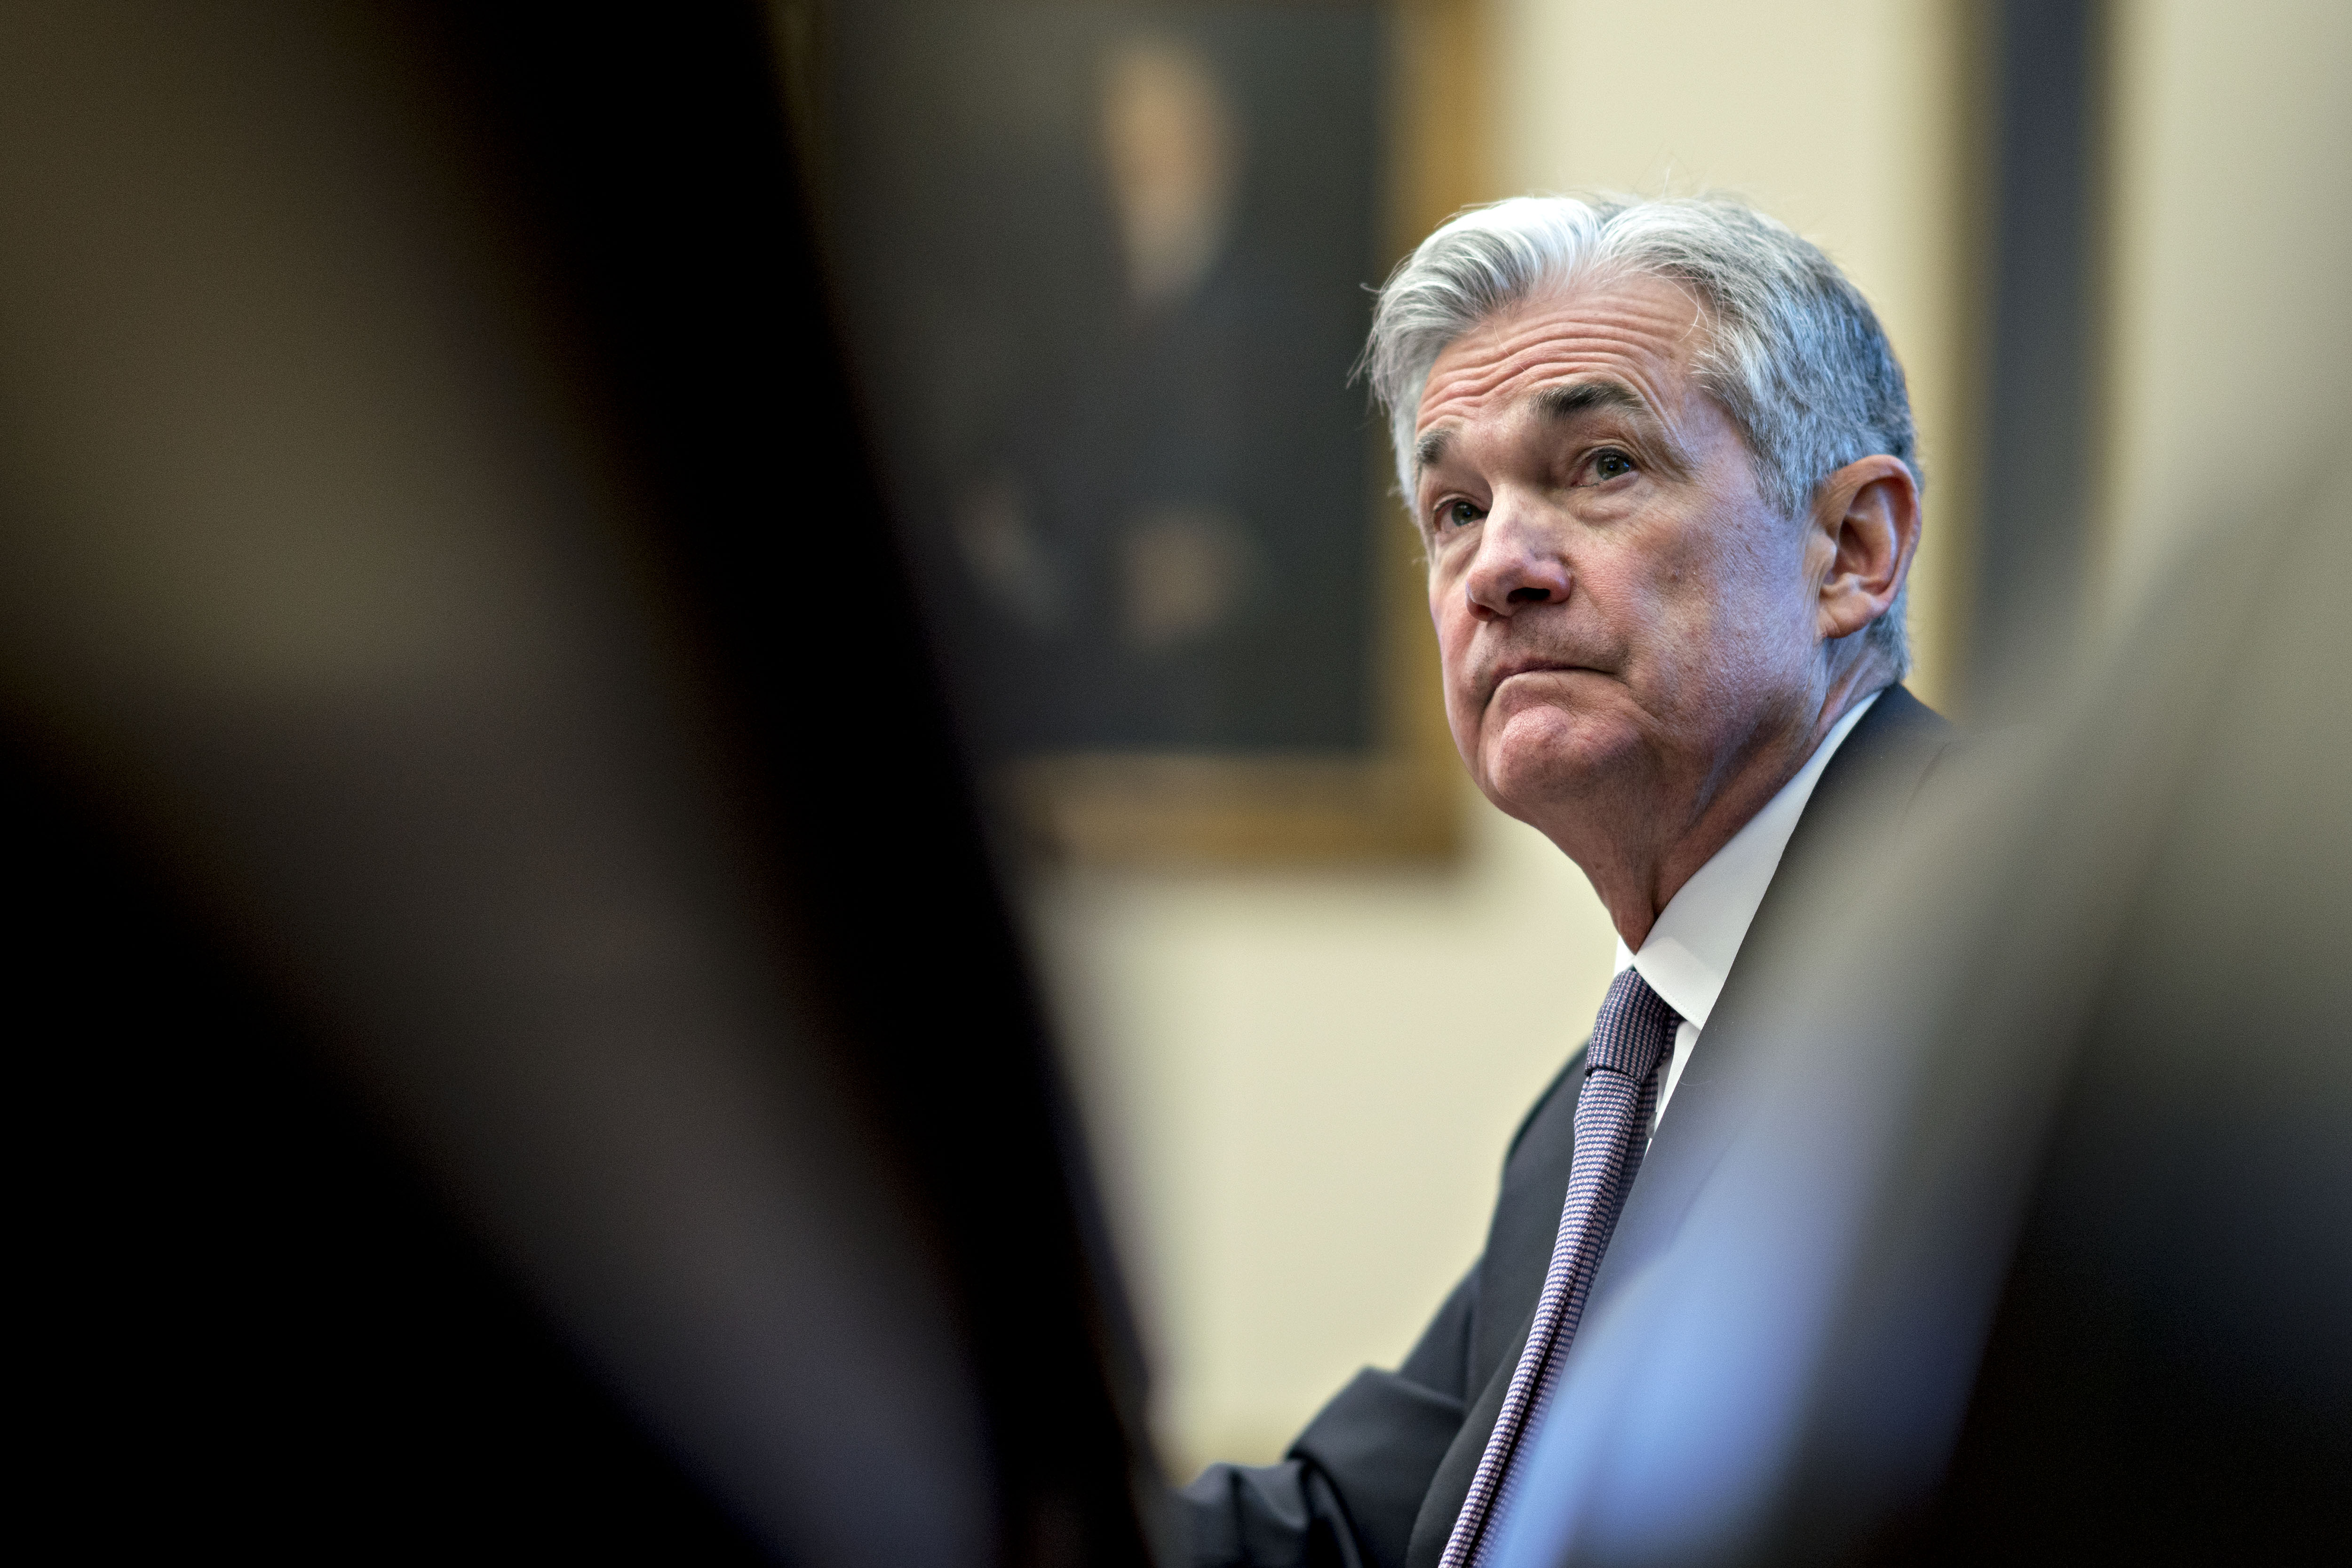 Jerome Powell, chairman of the U.S. Federal Reserve, listens during a House Financial Services Committee hearing in Washington, D.C., U.S., on Tuesday, Feb. 27, 2018.